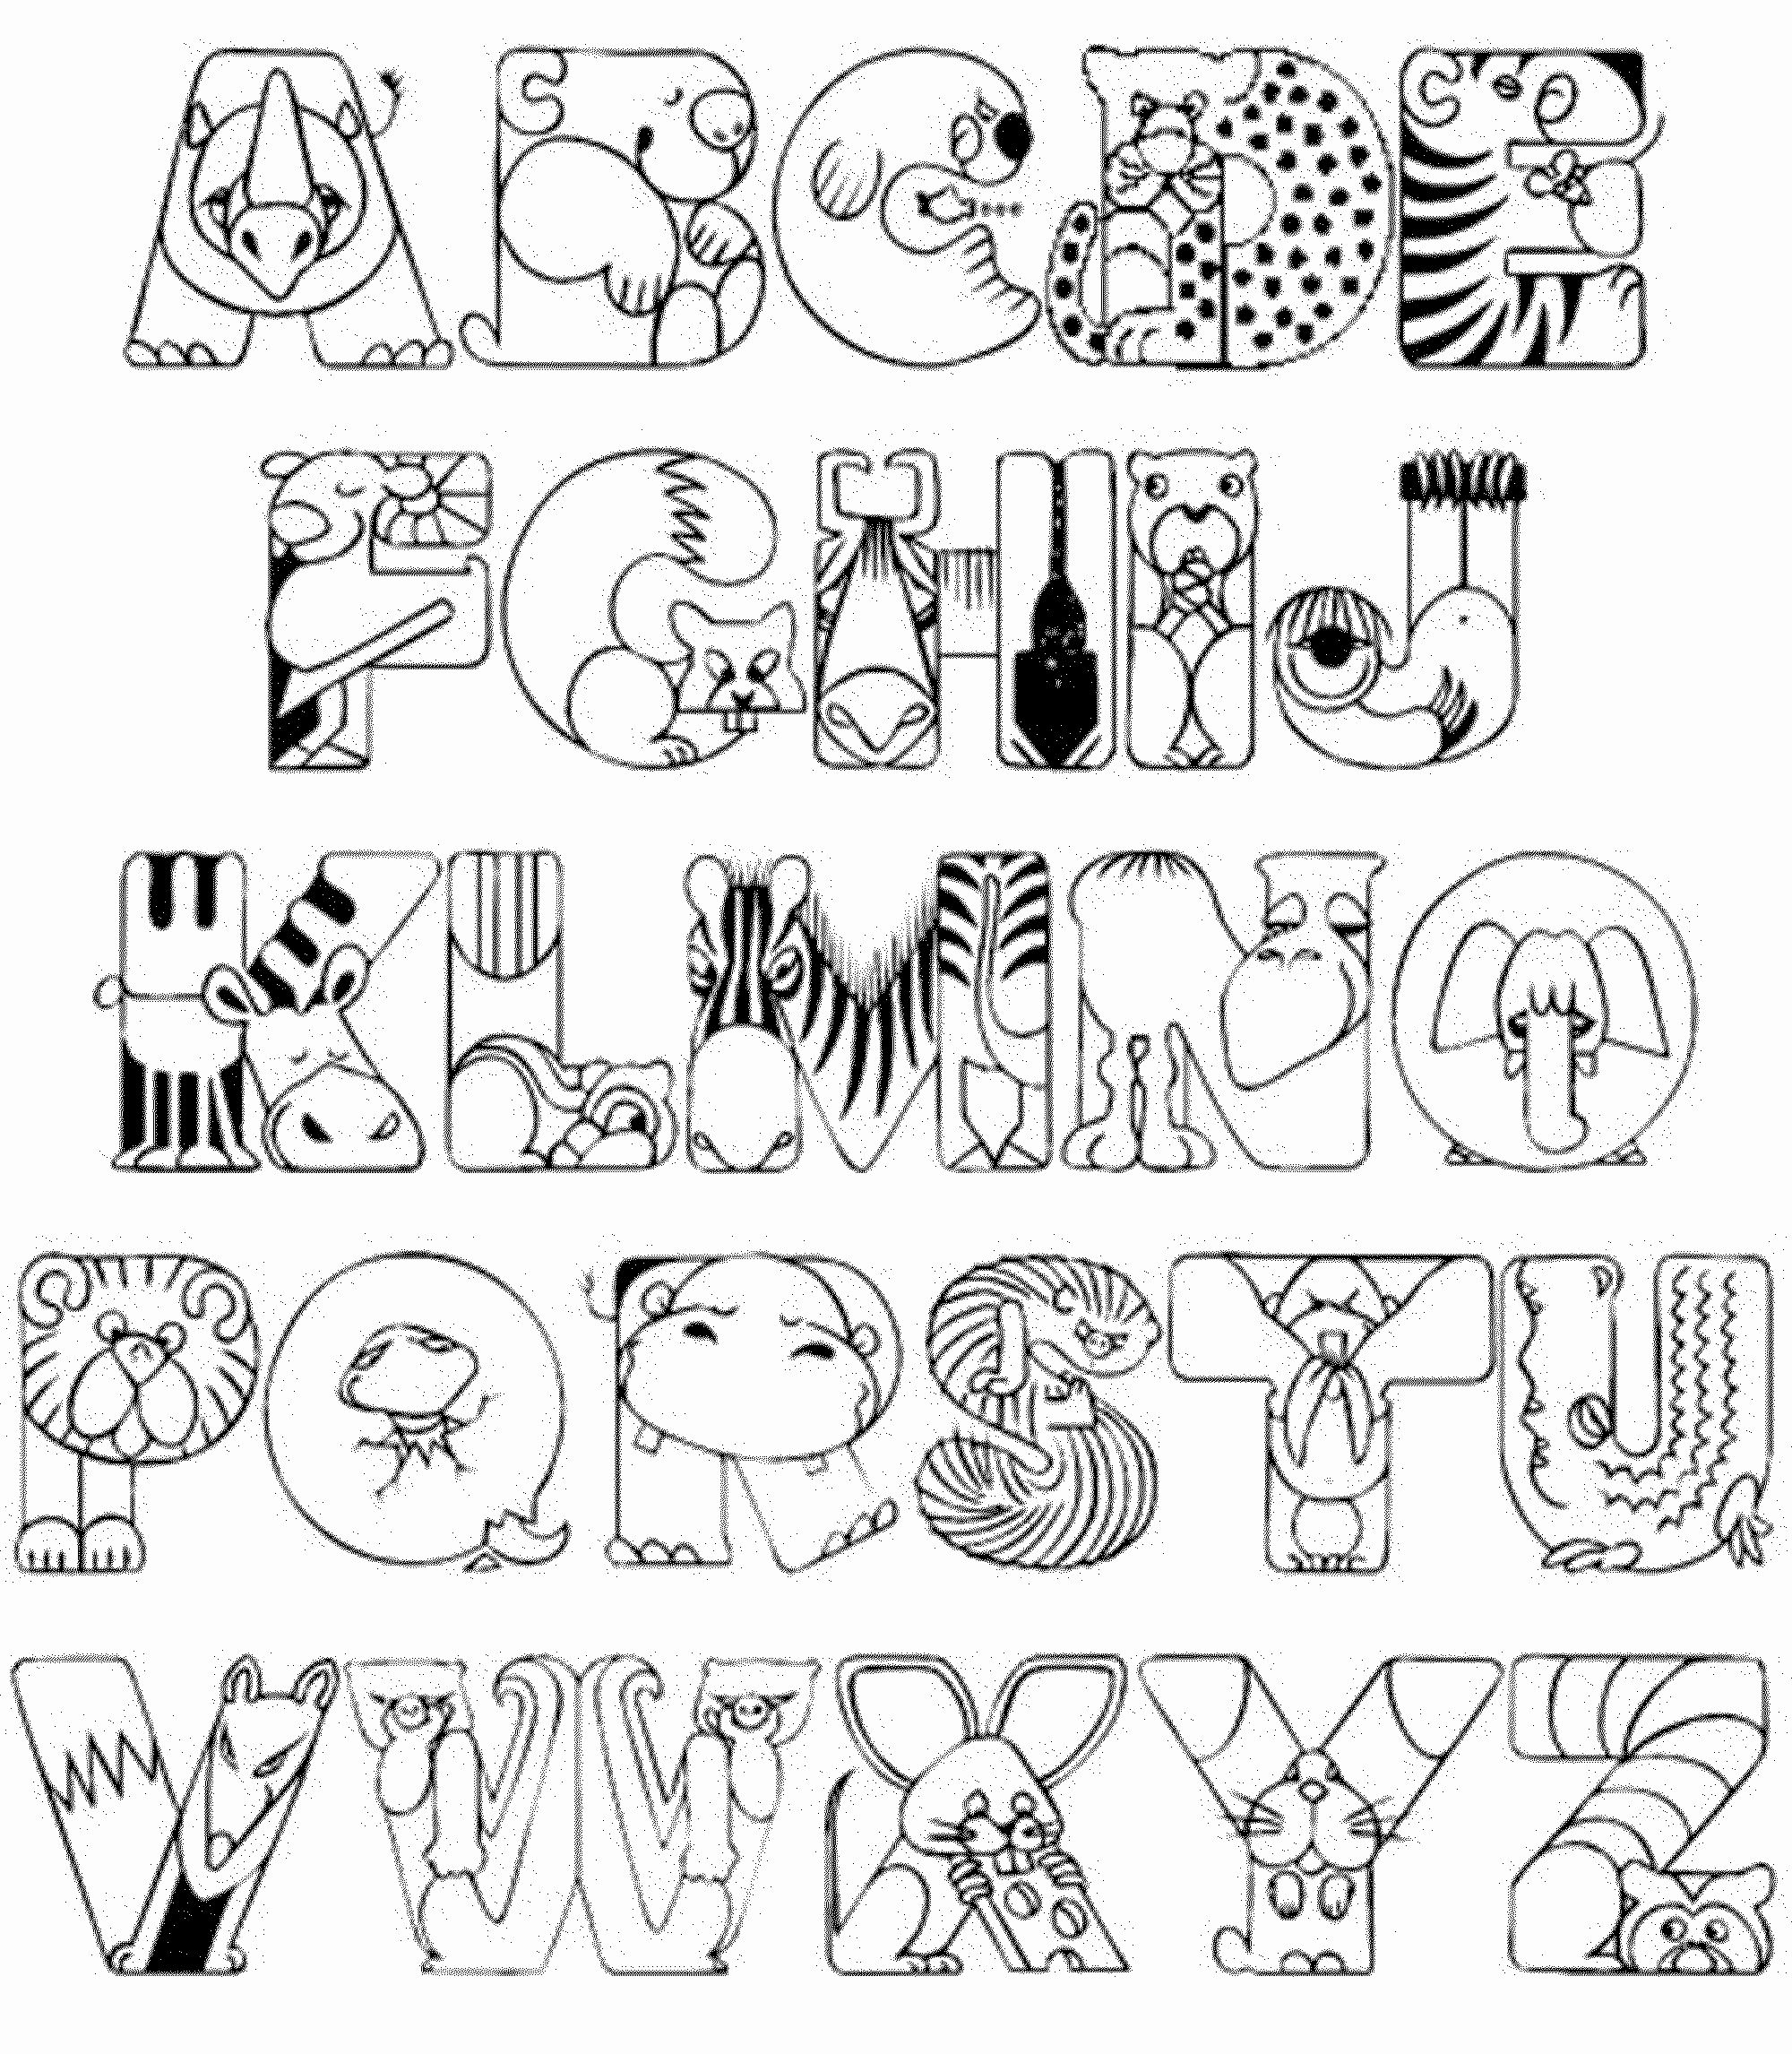 Letter A Coloring Pages Printable Inspirational Whole Alphabet Coloring Pages Free Printable Colori In 2020 Kindergarten Coloring Pages Abc Coloring Pages Abc Coloring